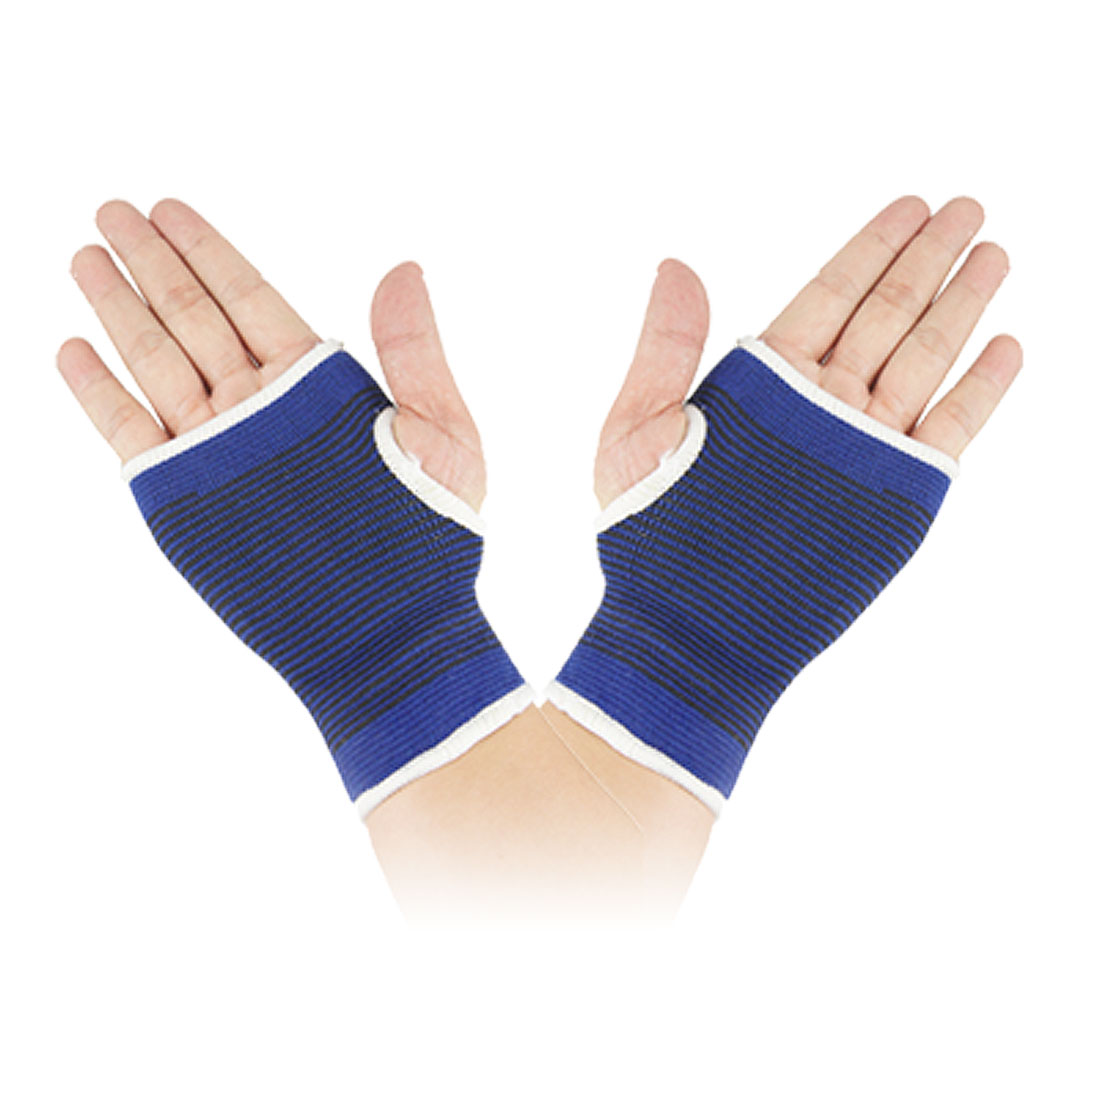 2 Pcs Black Blue Striped Stretchy Palm Wrist Support Protector